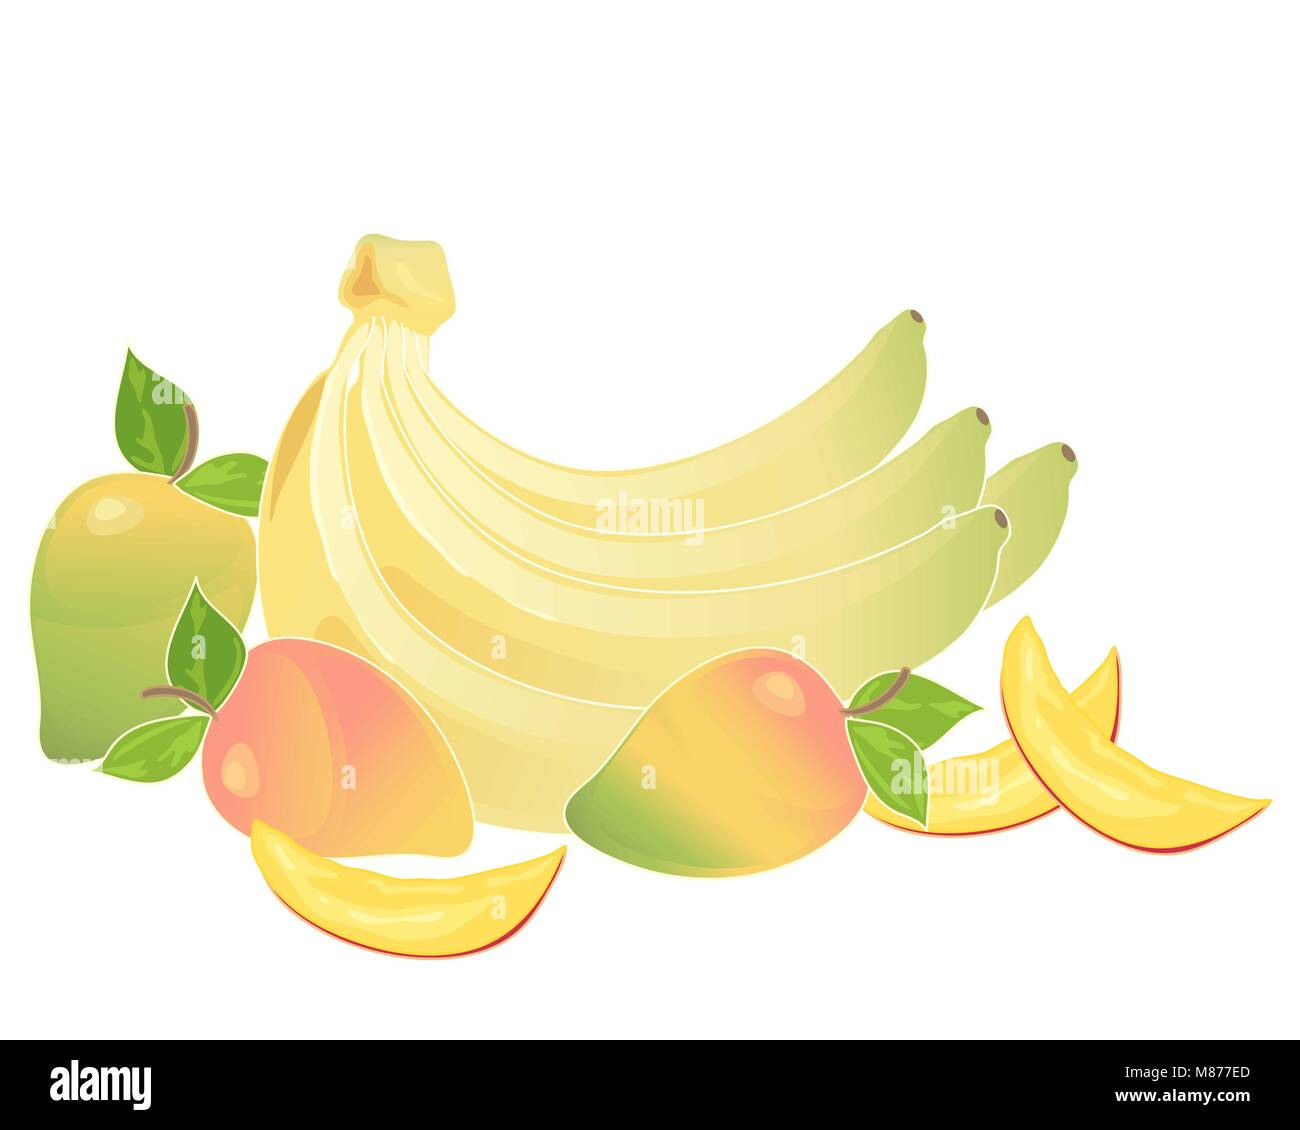 a vector illustration in eps 10 format of a bunch of yellow bananas and some mango fruits with slices on a white - Stock Vector